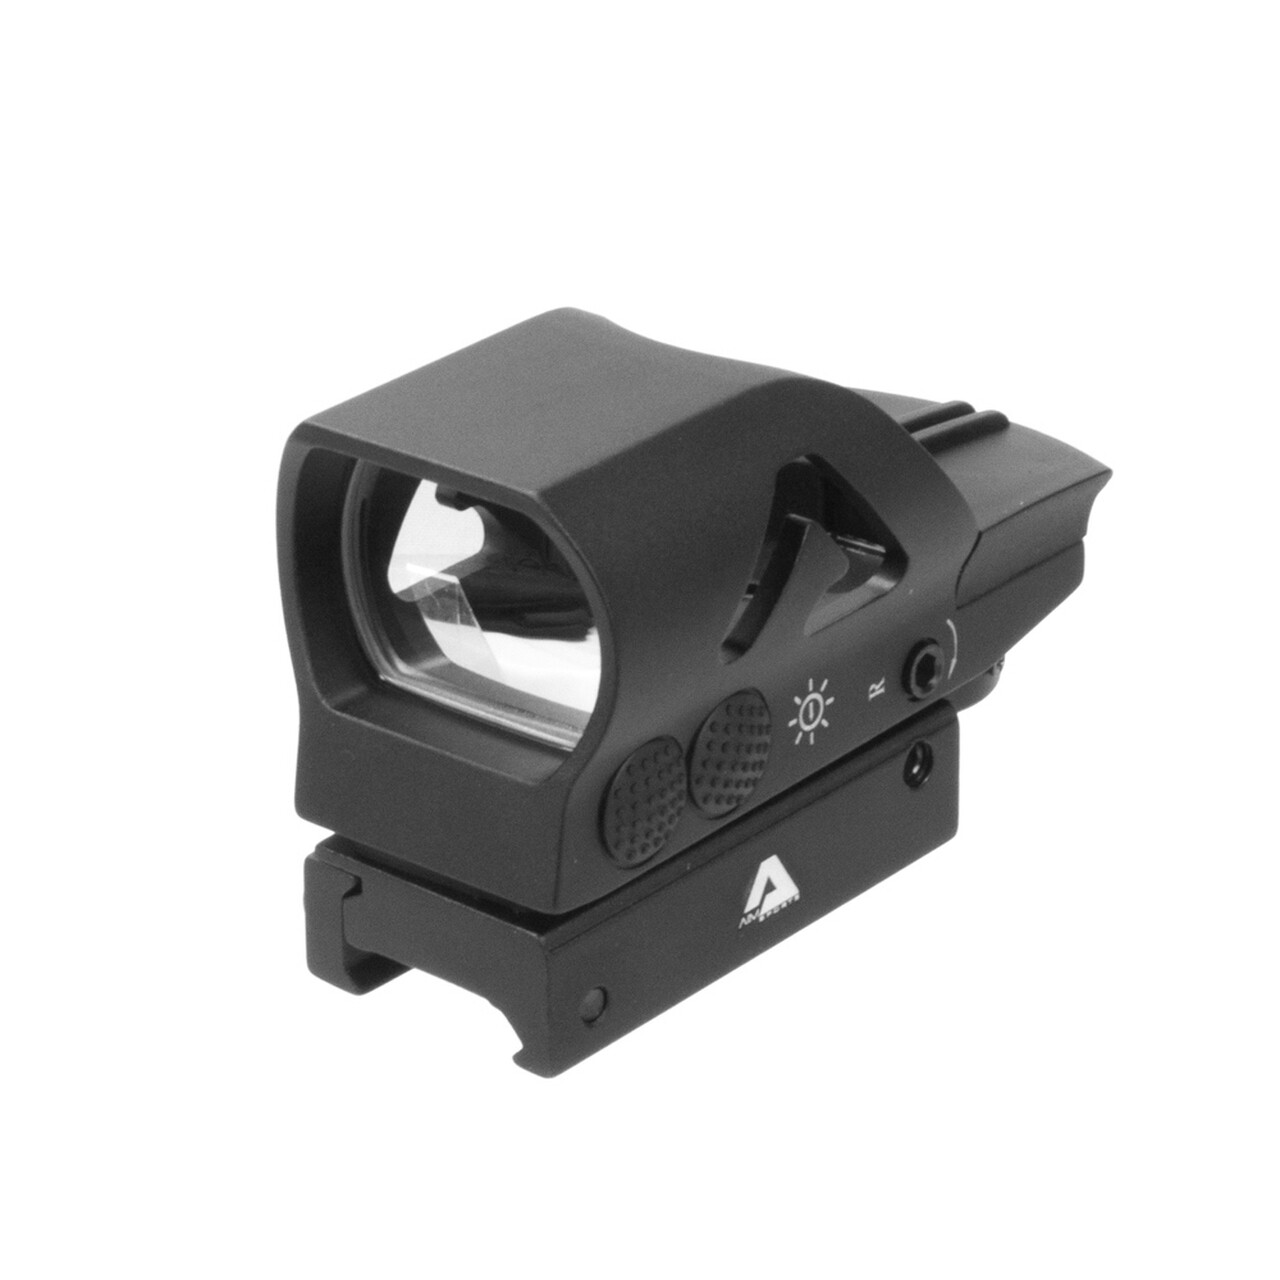 1x34mm Reflex Sight